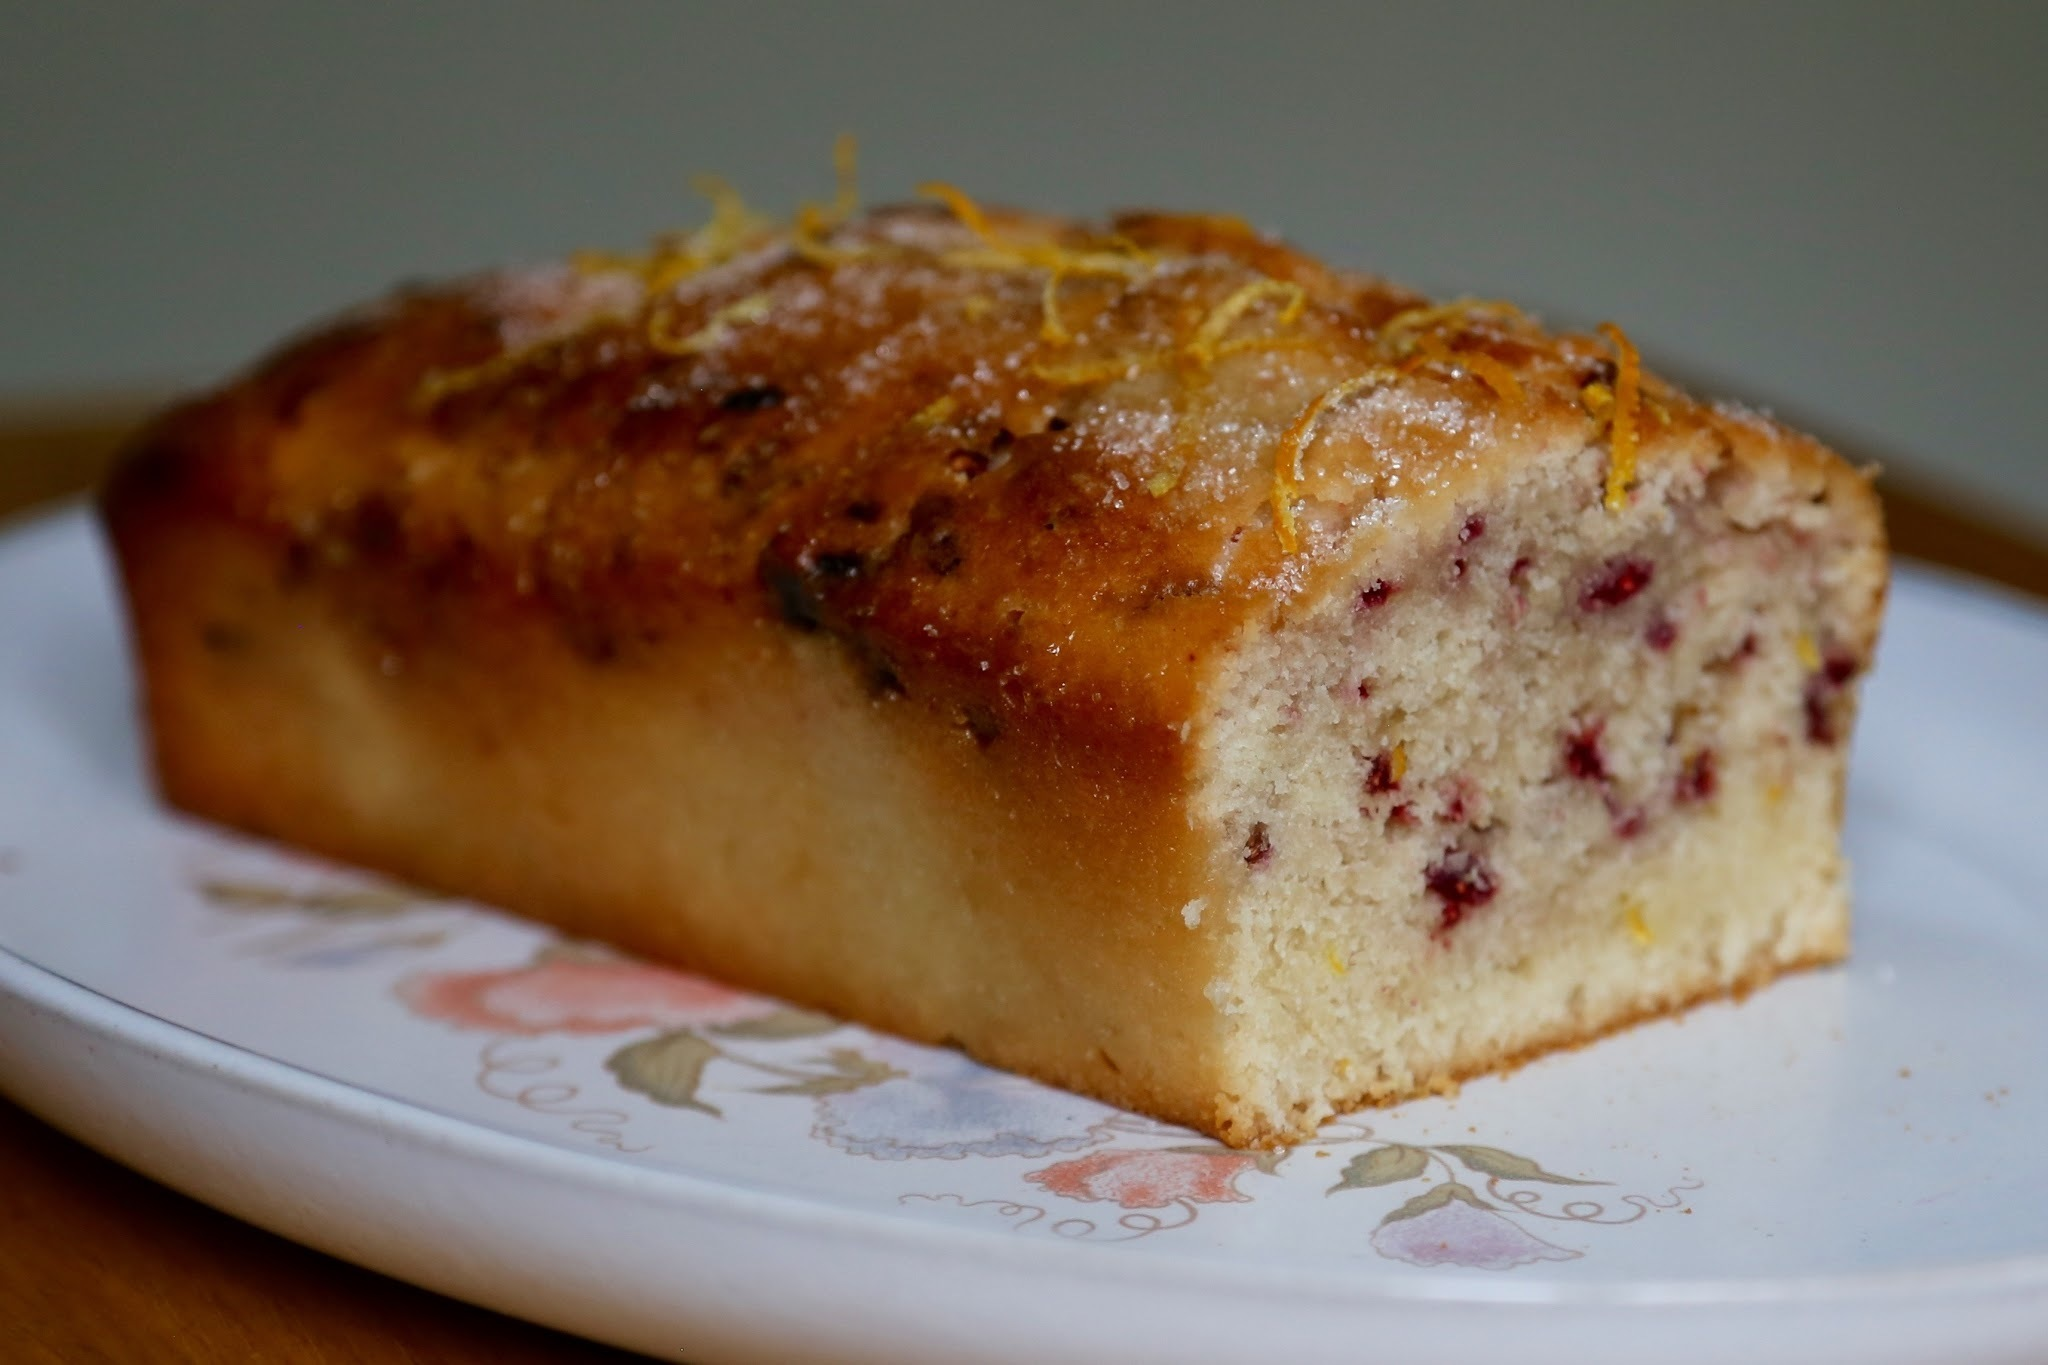 Vegan Raspberry Lemon Drizzle Cake